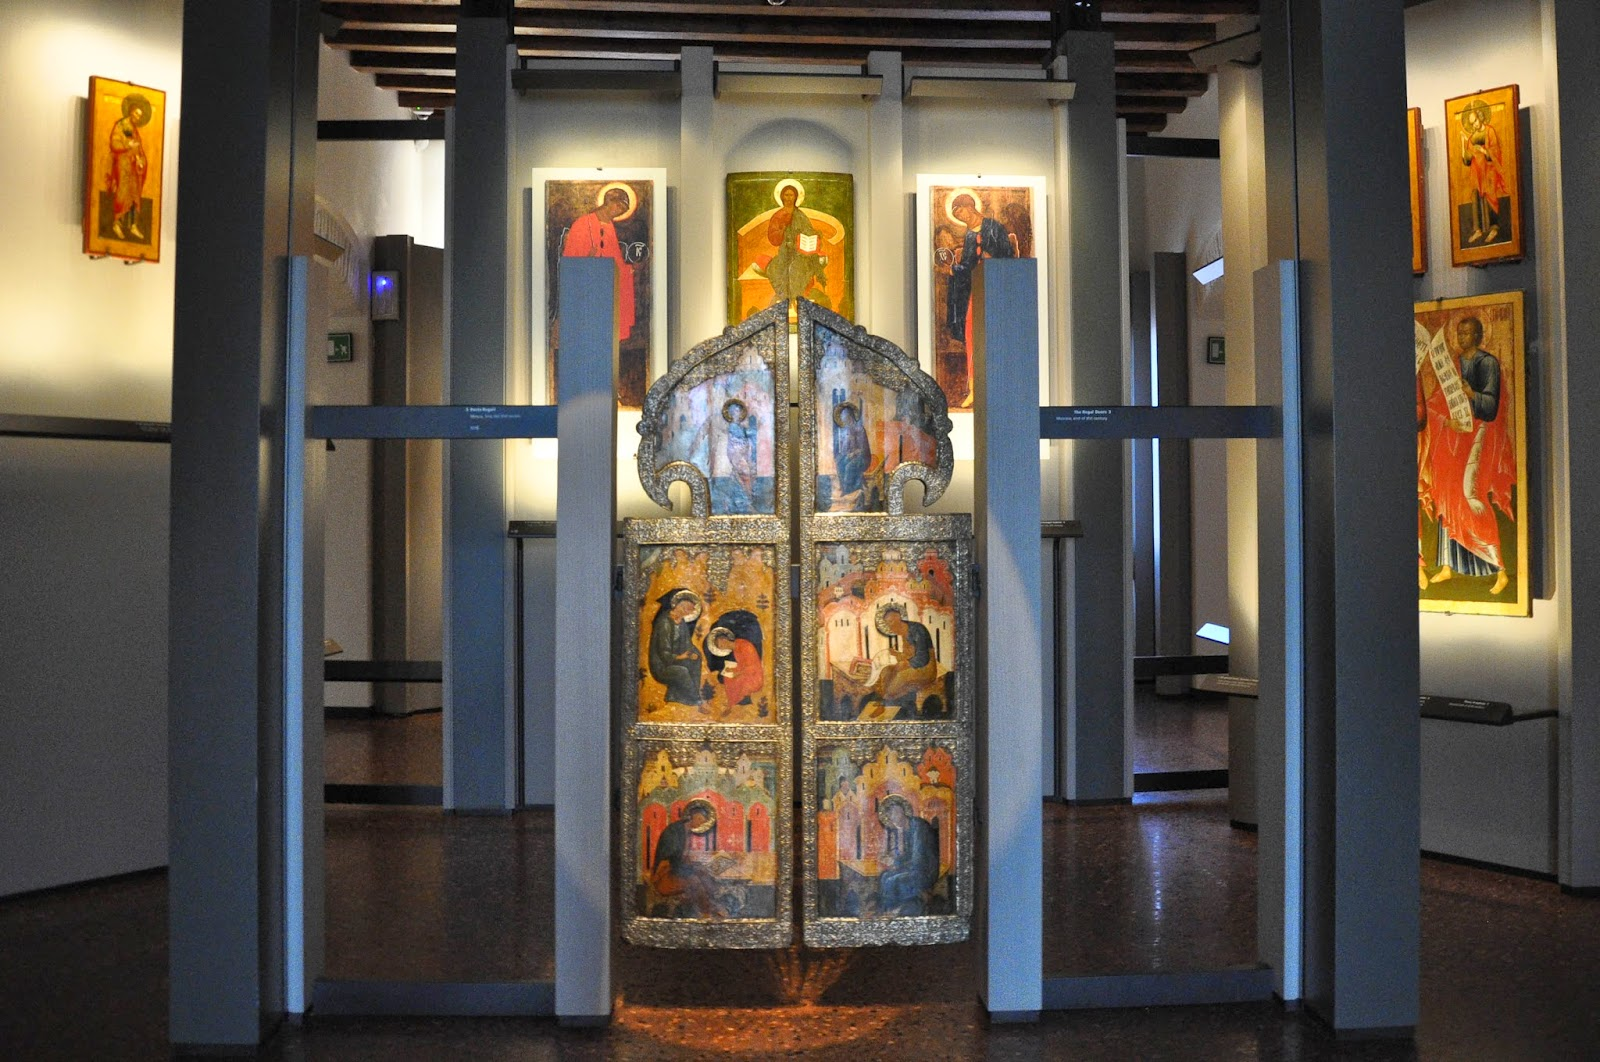 The Regal Doors - part of a traditional Russian church iconostassis - dating to the 16th century, Gallerie d'Italia, Palazzo Leoni Montanari, Vicenza